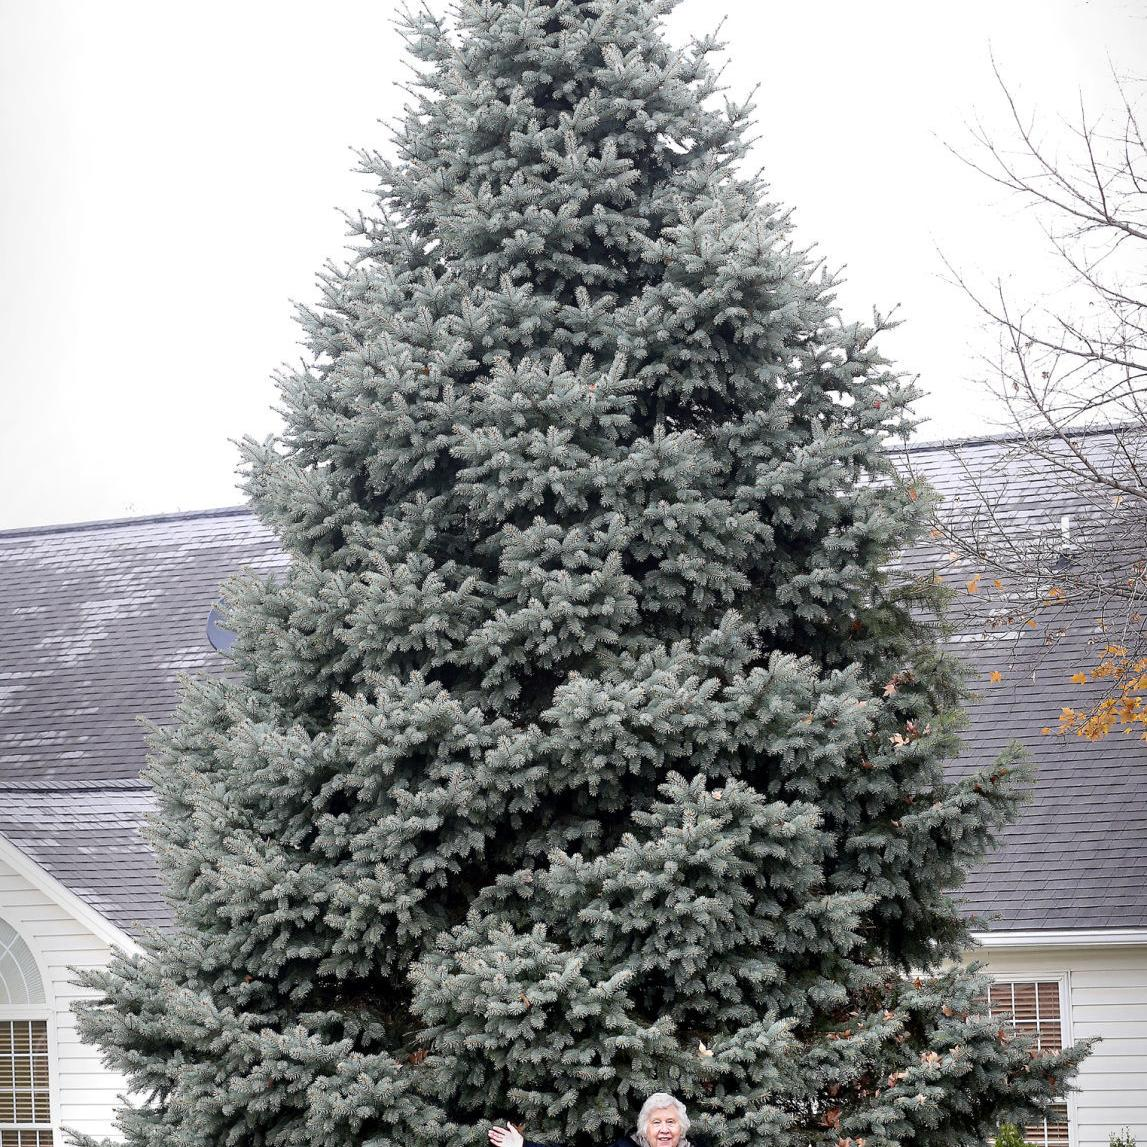 Towering blue spruce to be city's Christmas tree